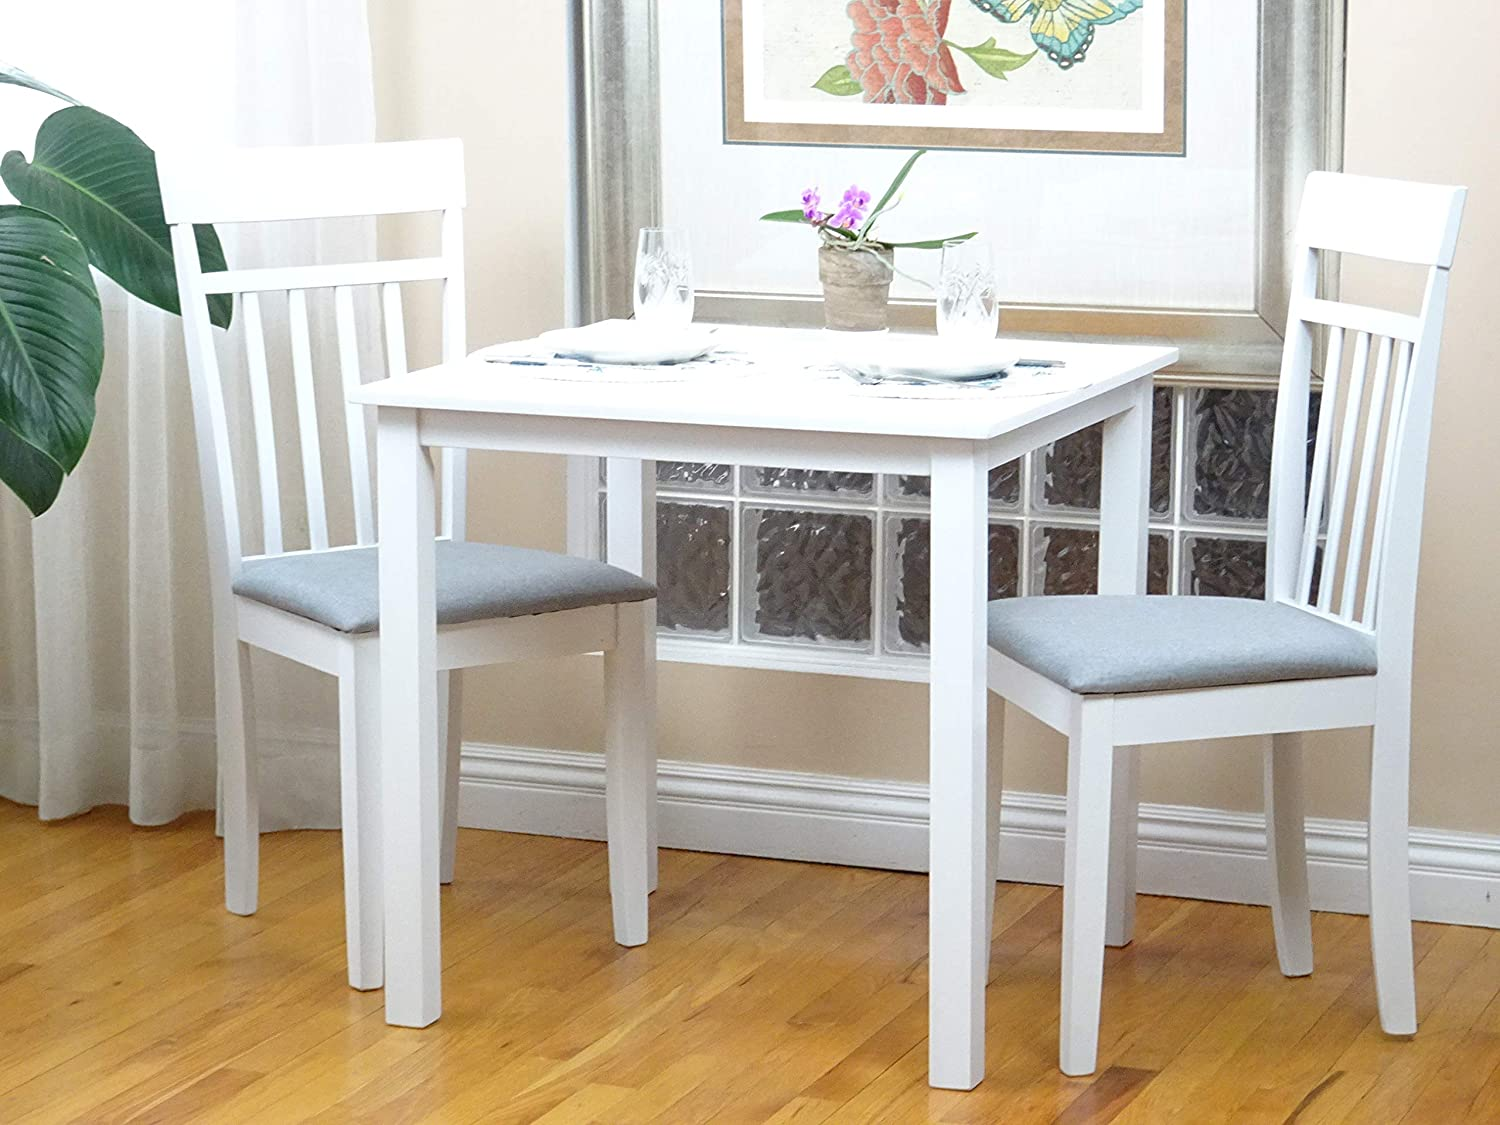 SunBear Furniture Dining Kitchen Set of 3 Square Table and 2 Side Warm Chairs Classic Solid Wood in White Finish